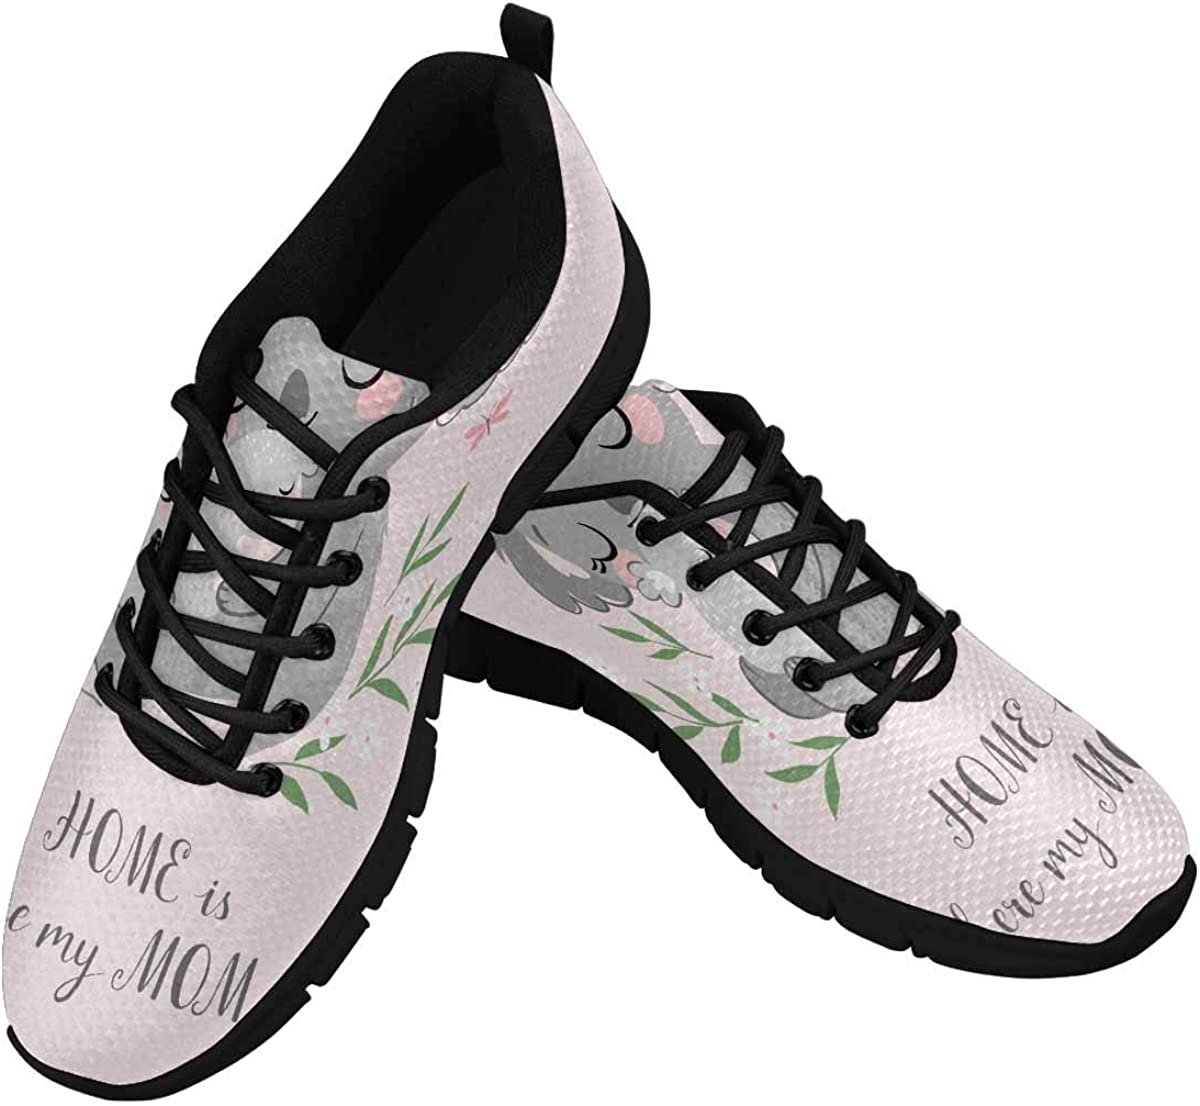 INTERESTPRINT Cute Koala Mother and Baby Lightweight Mesh Breathable Sneakers for Women